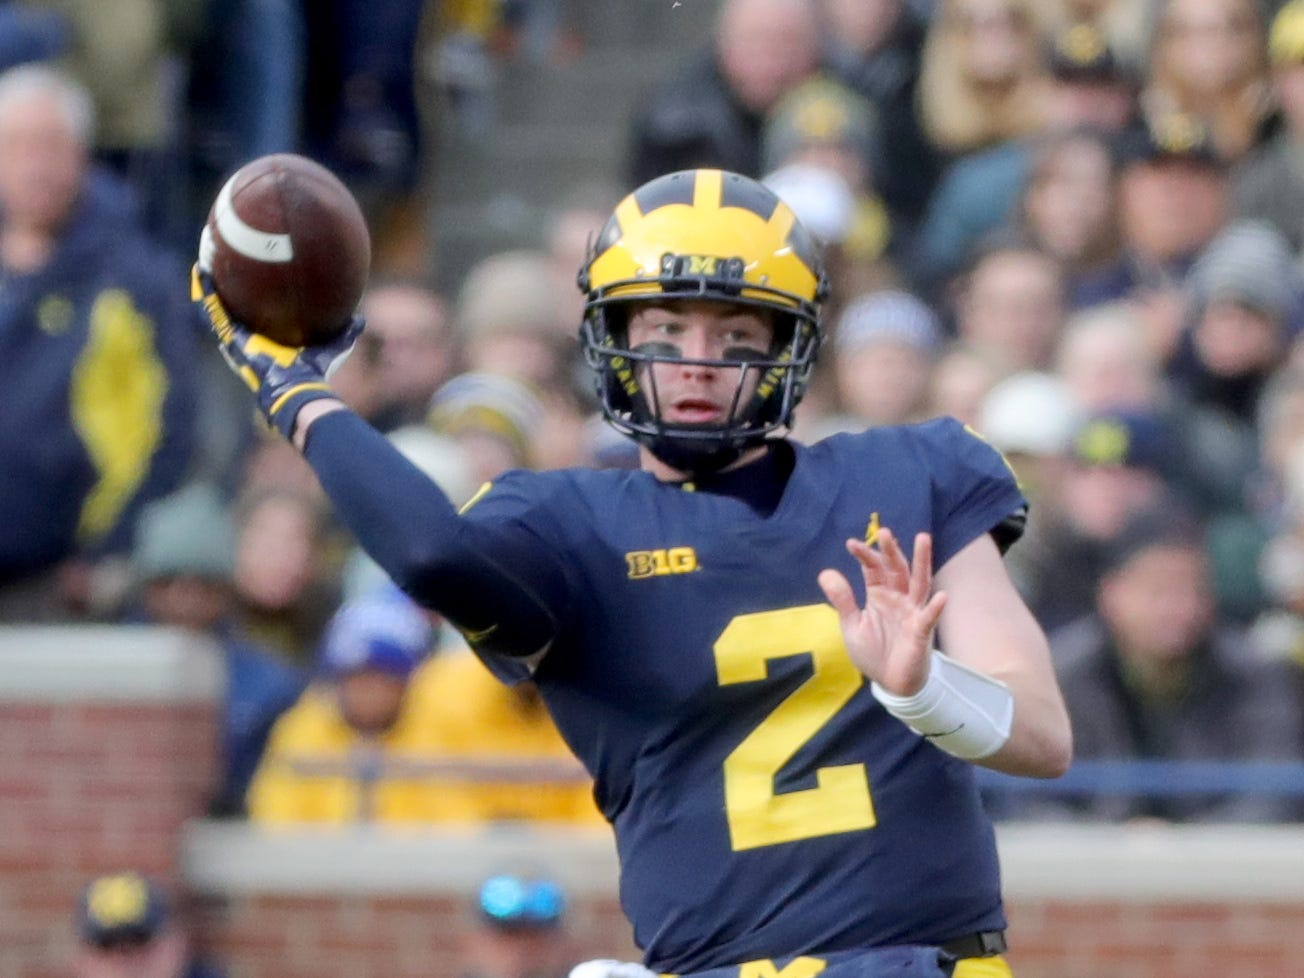 Michigan quarterback Shea Patterson looks to pass against Penn State during the first half Saturday, November 3, 2018 at Michigan Stadium in Ann Arbor.